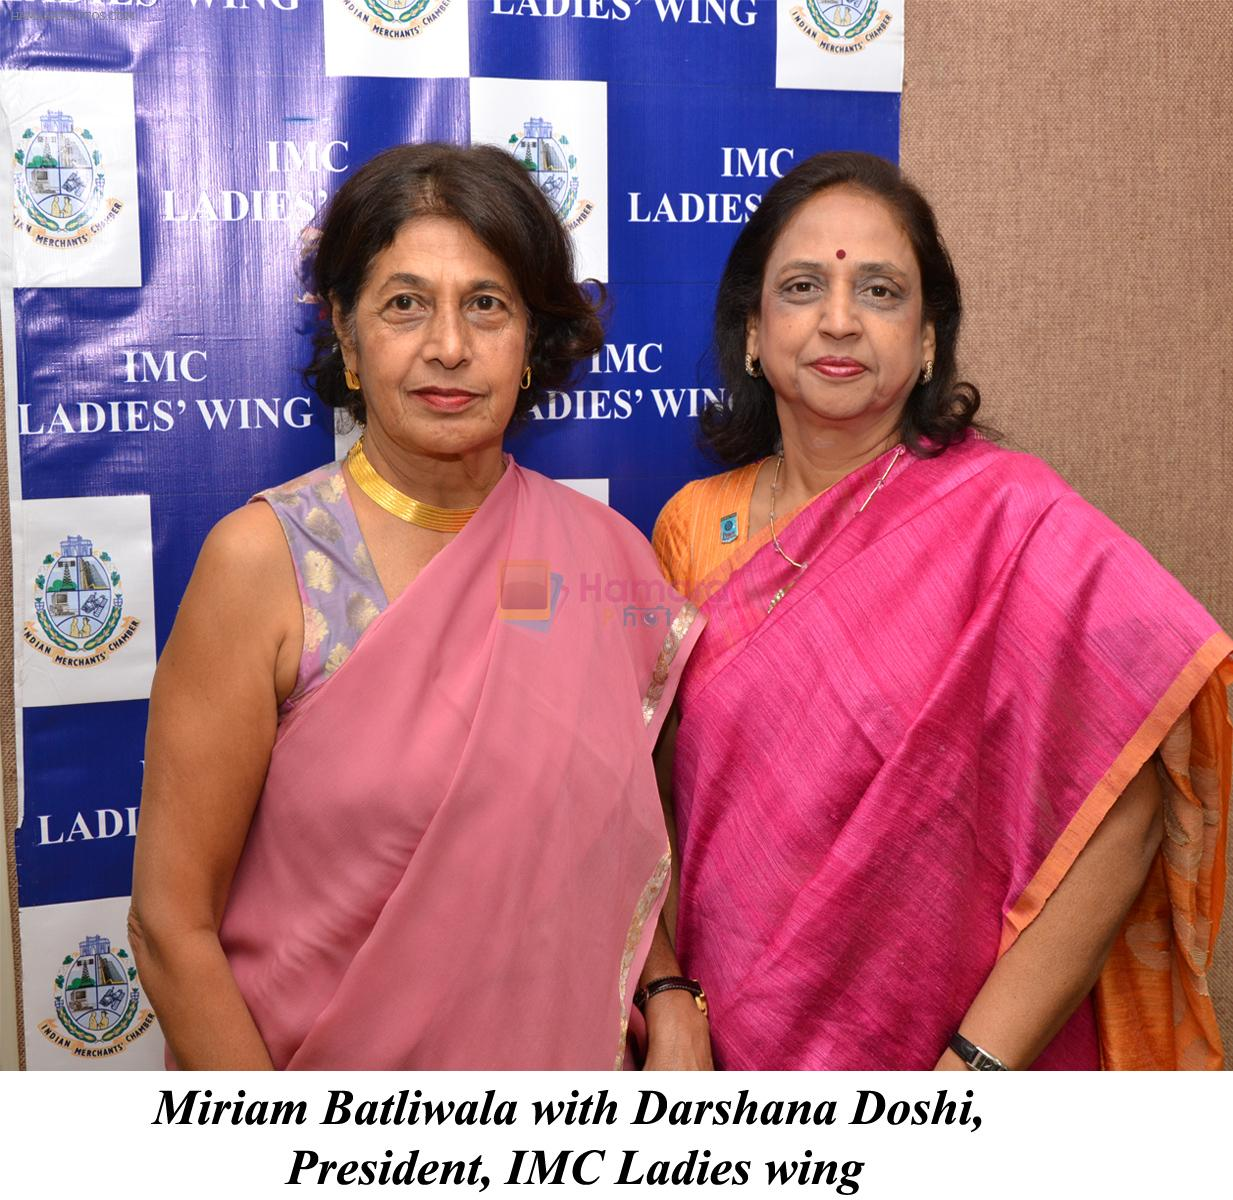 Miriam Batliwala and Darshana Doshi